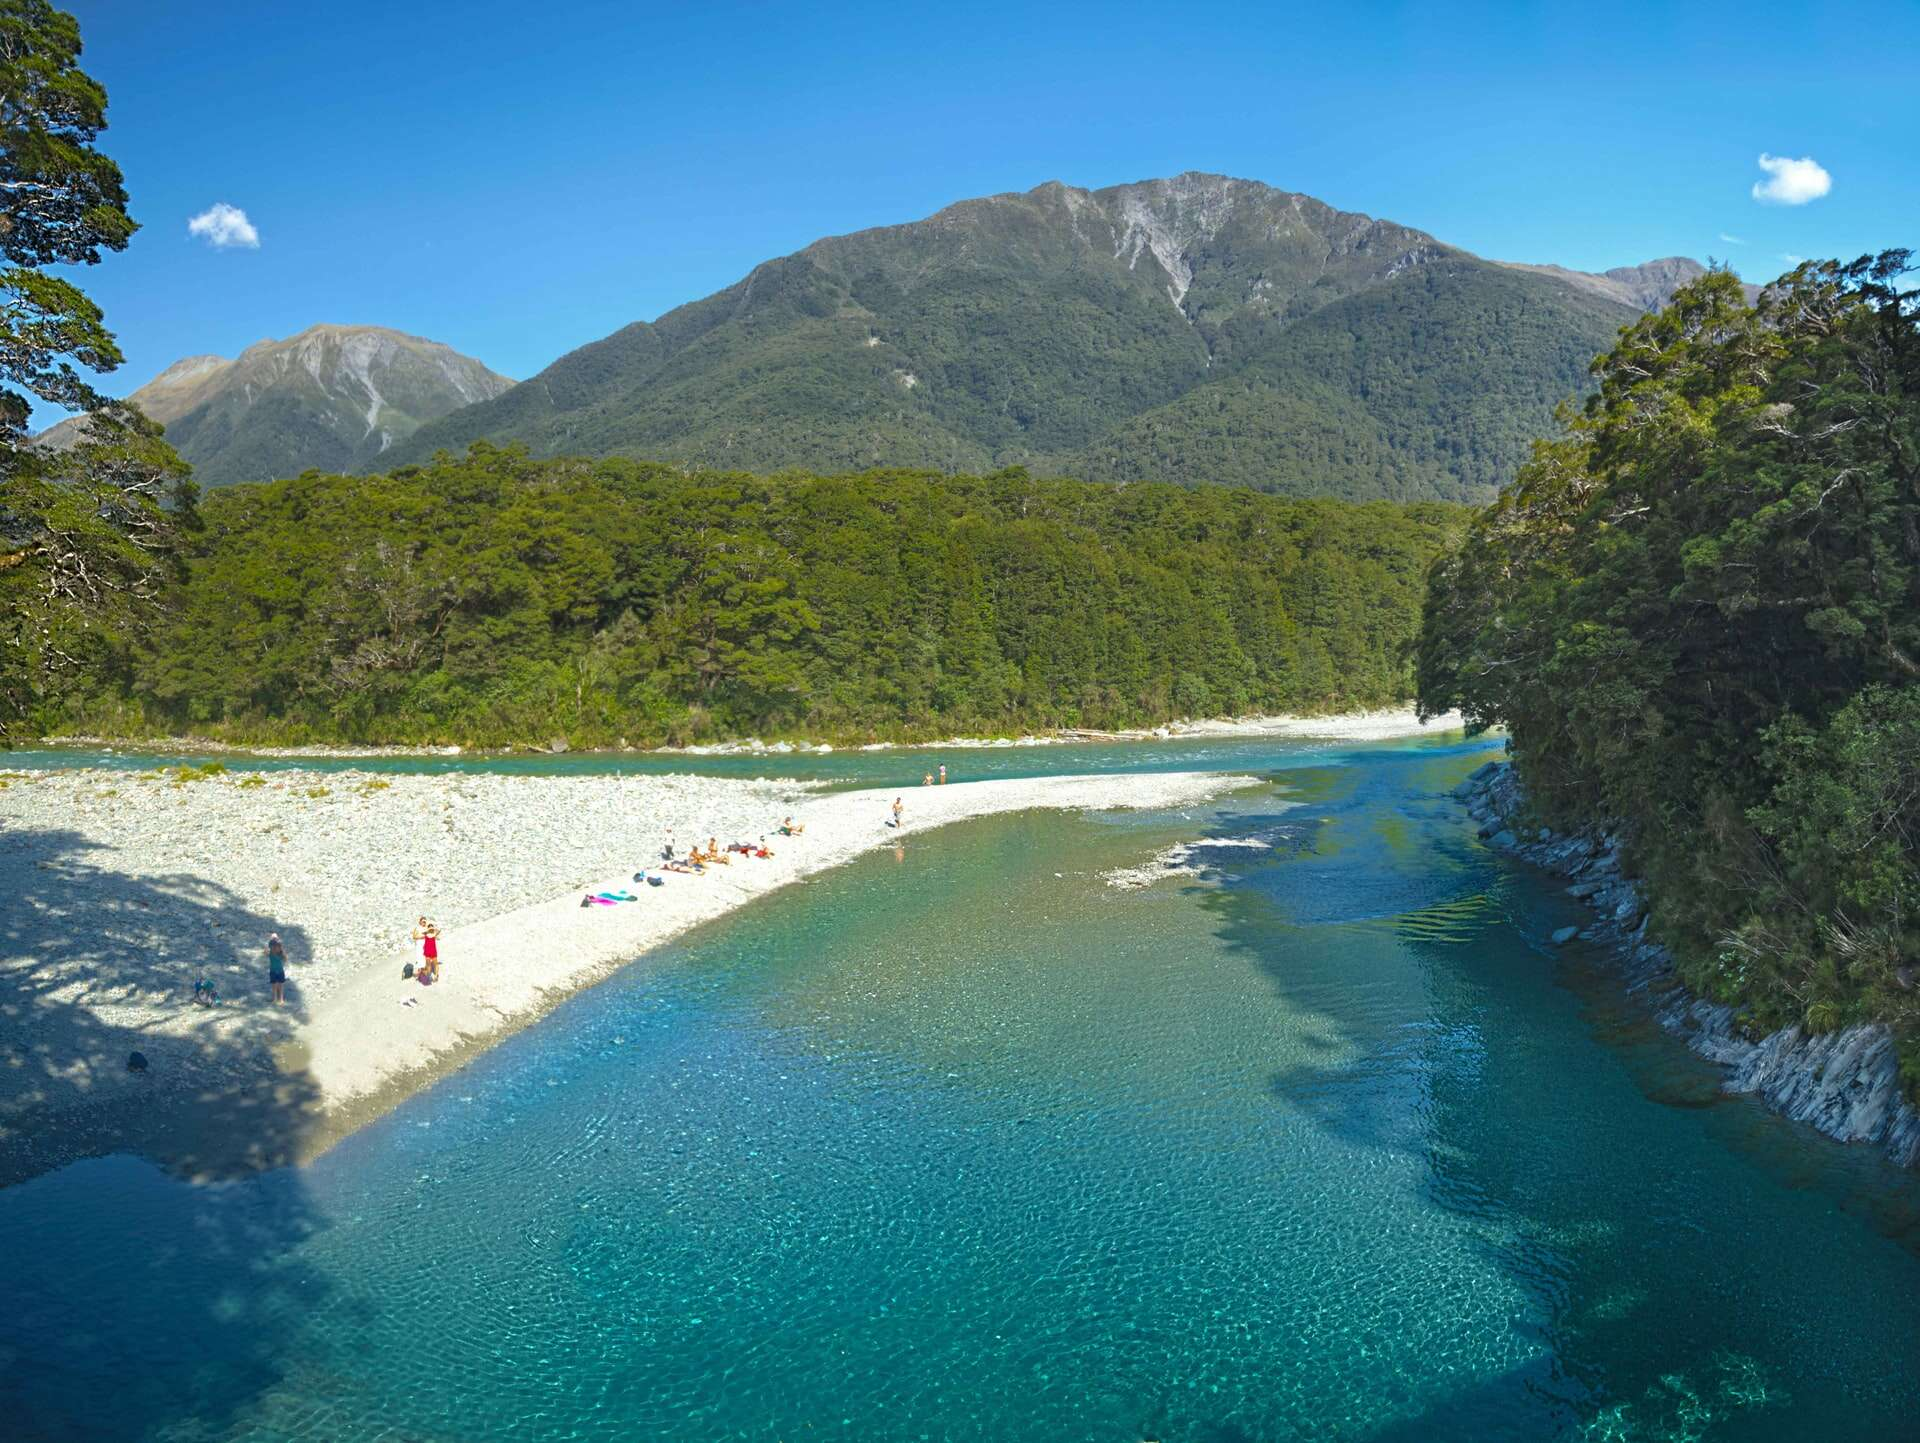 March 9th — Queenstown – Kamana Lakehouse – 2 nights